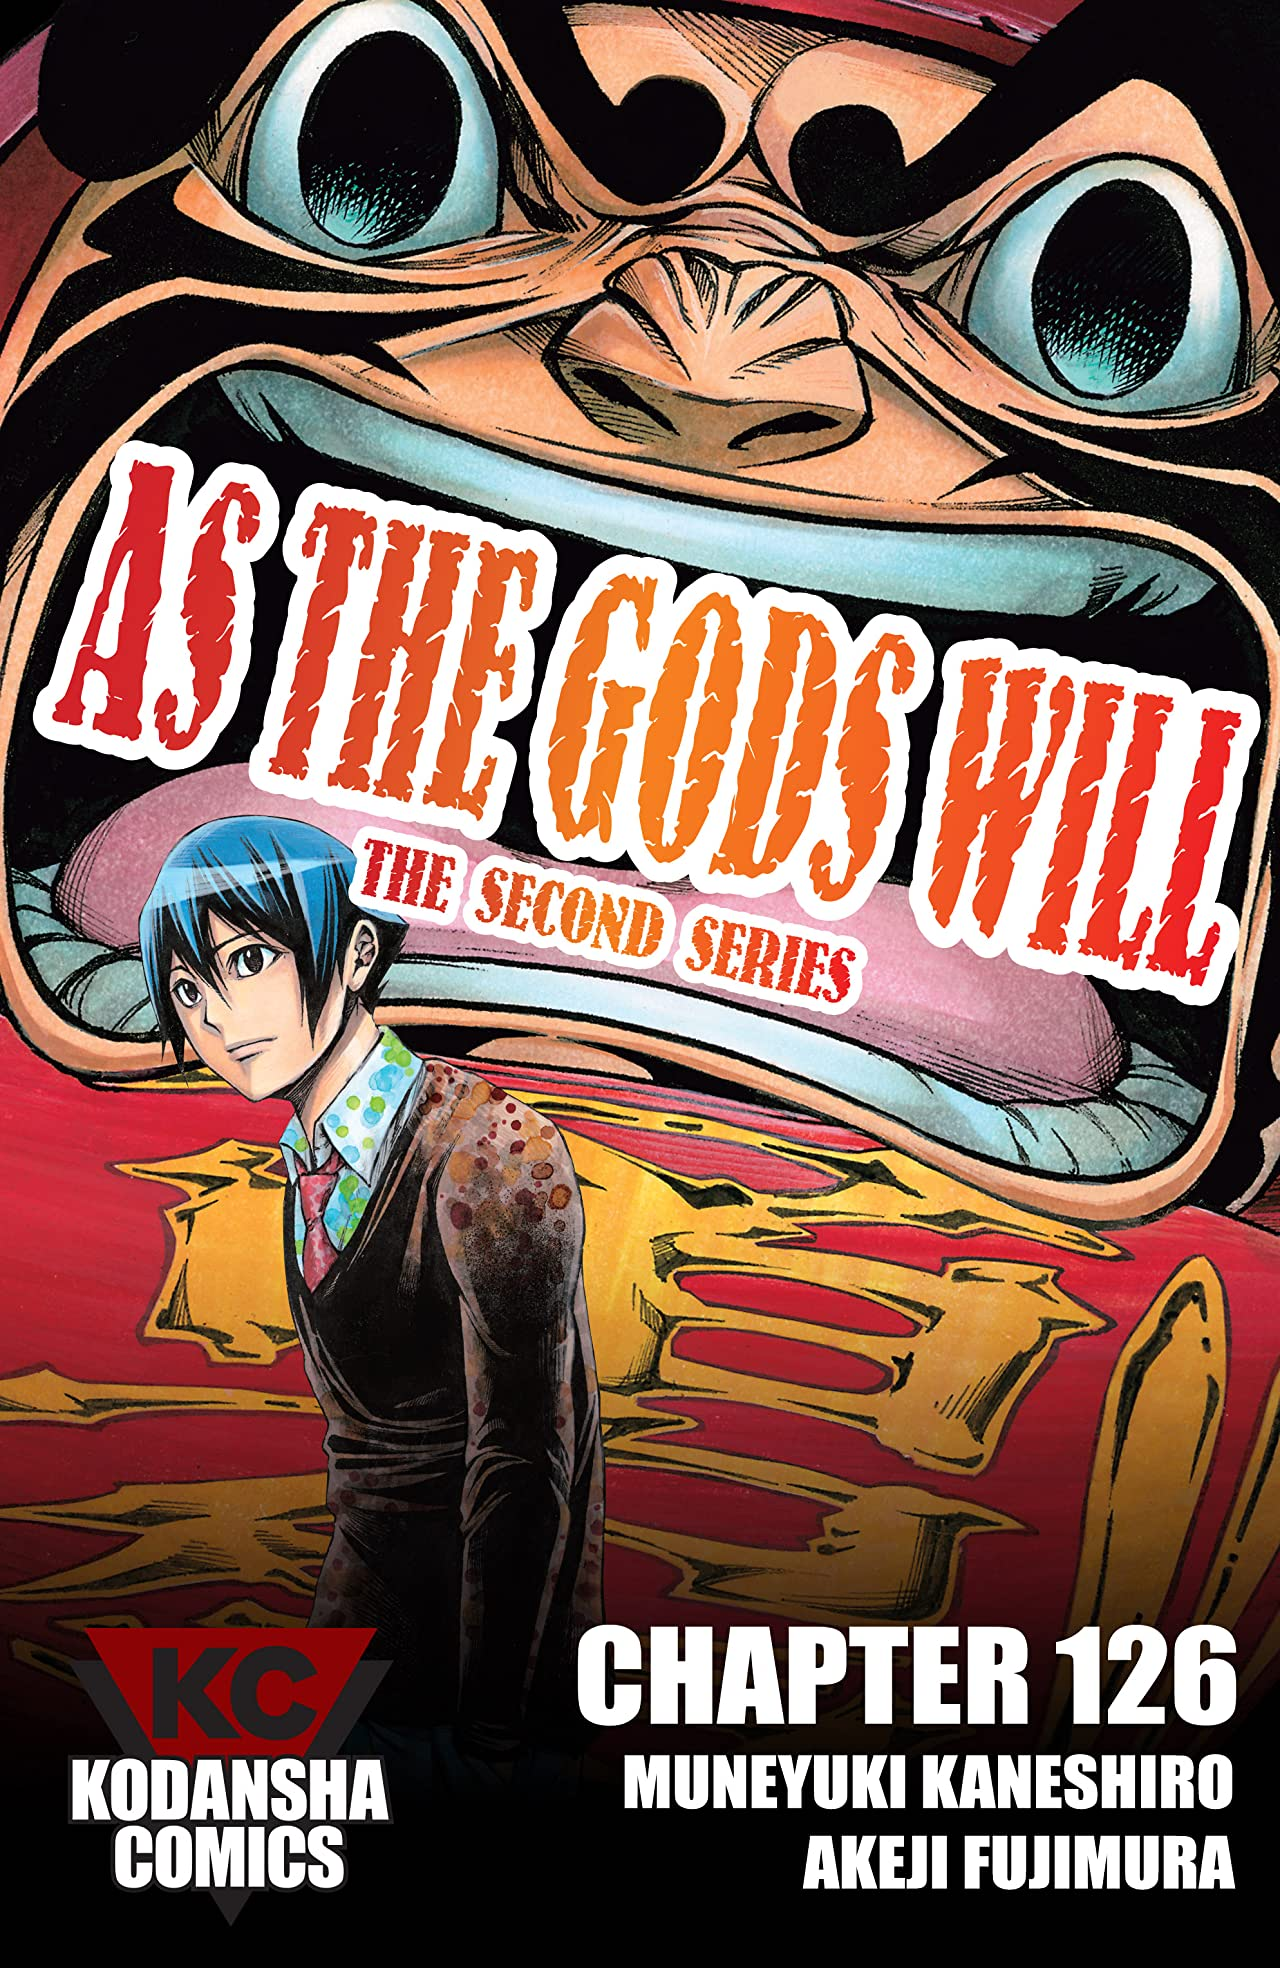 As The Gods Will: The Second Series #126